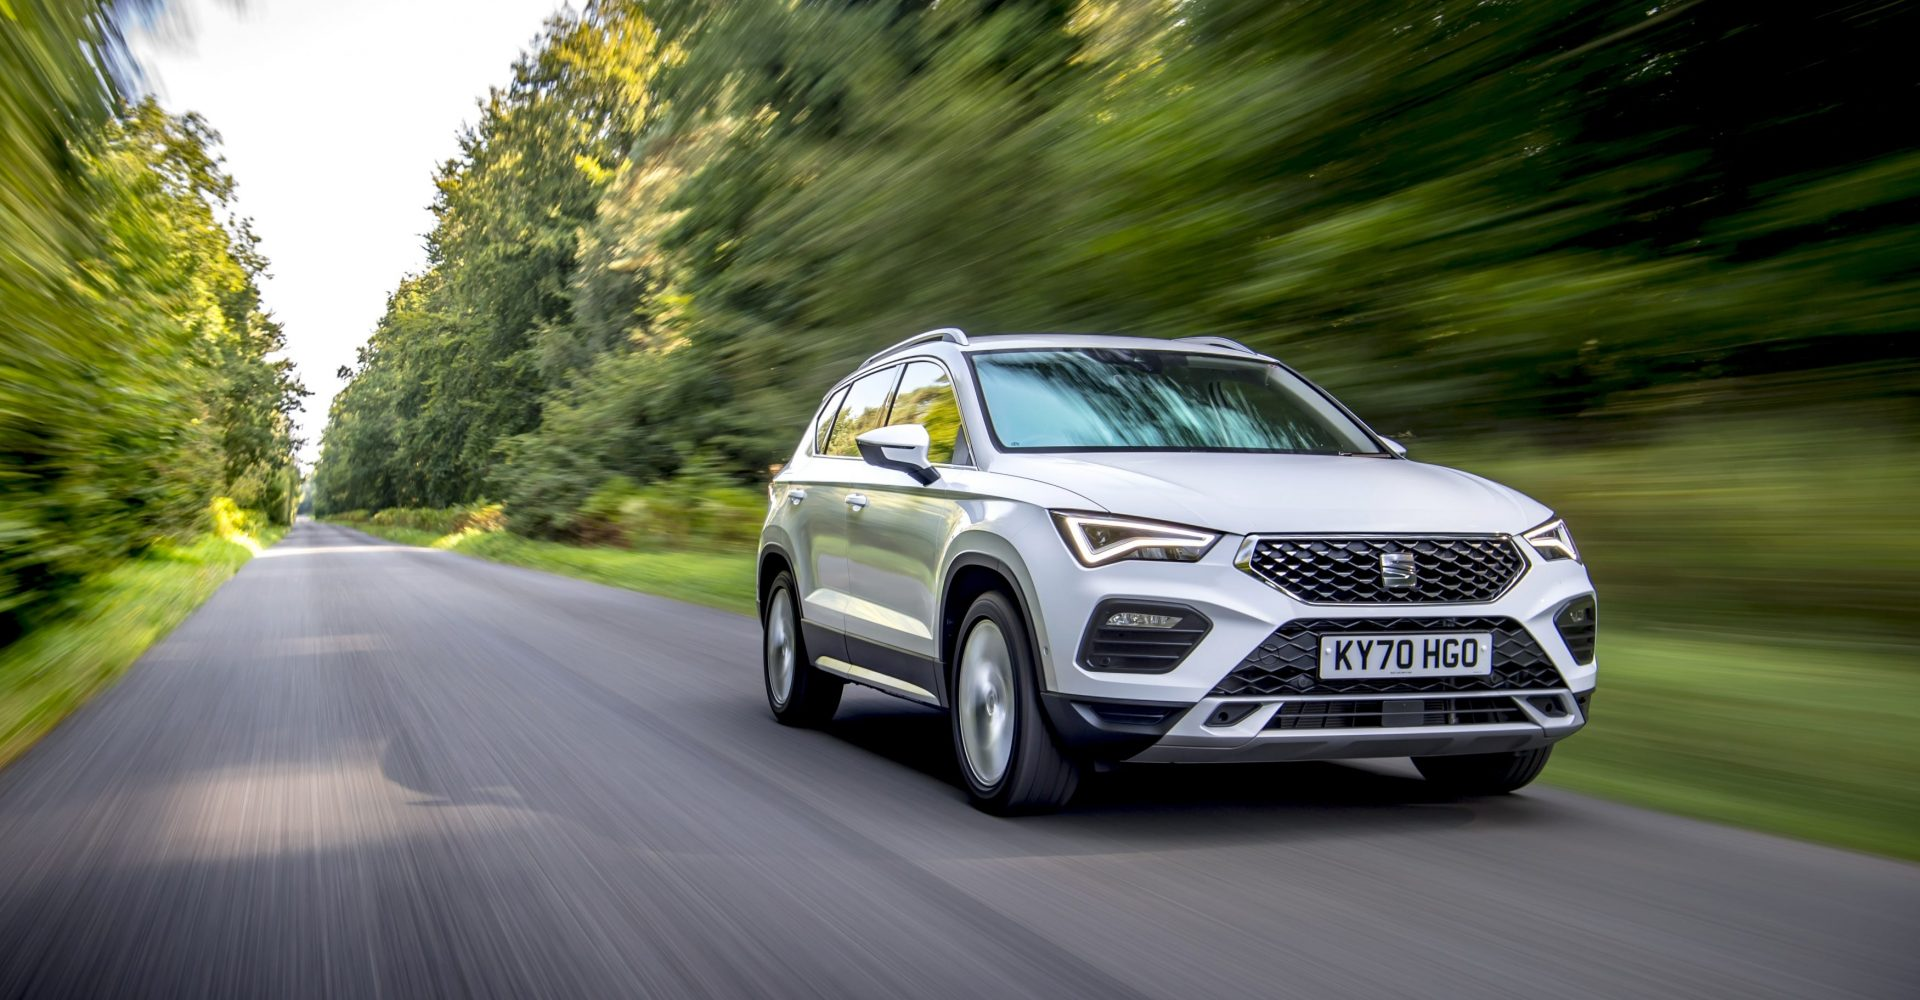 First Drive: The updated Seat Ateca is a force to be reckoned with in the family SUV class